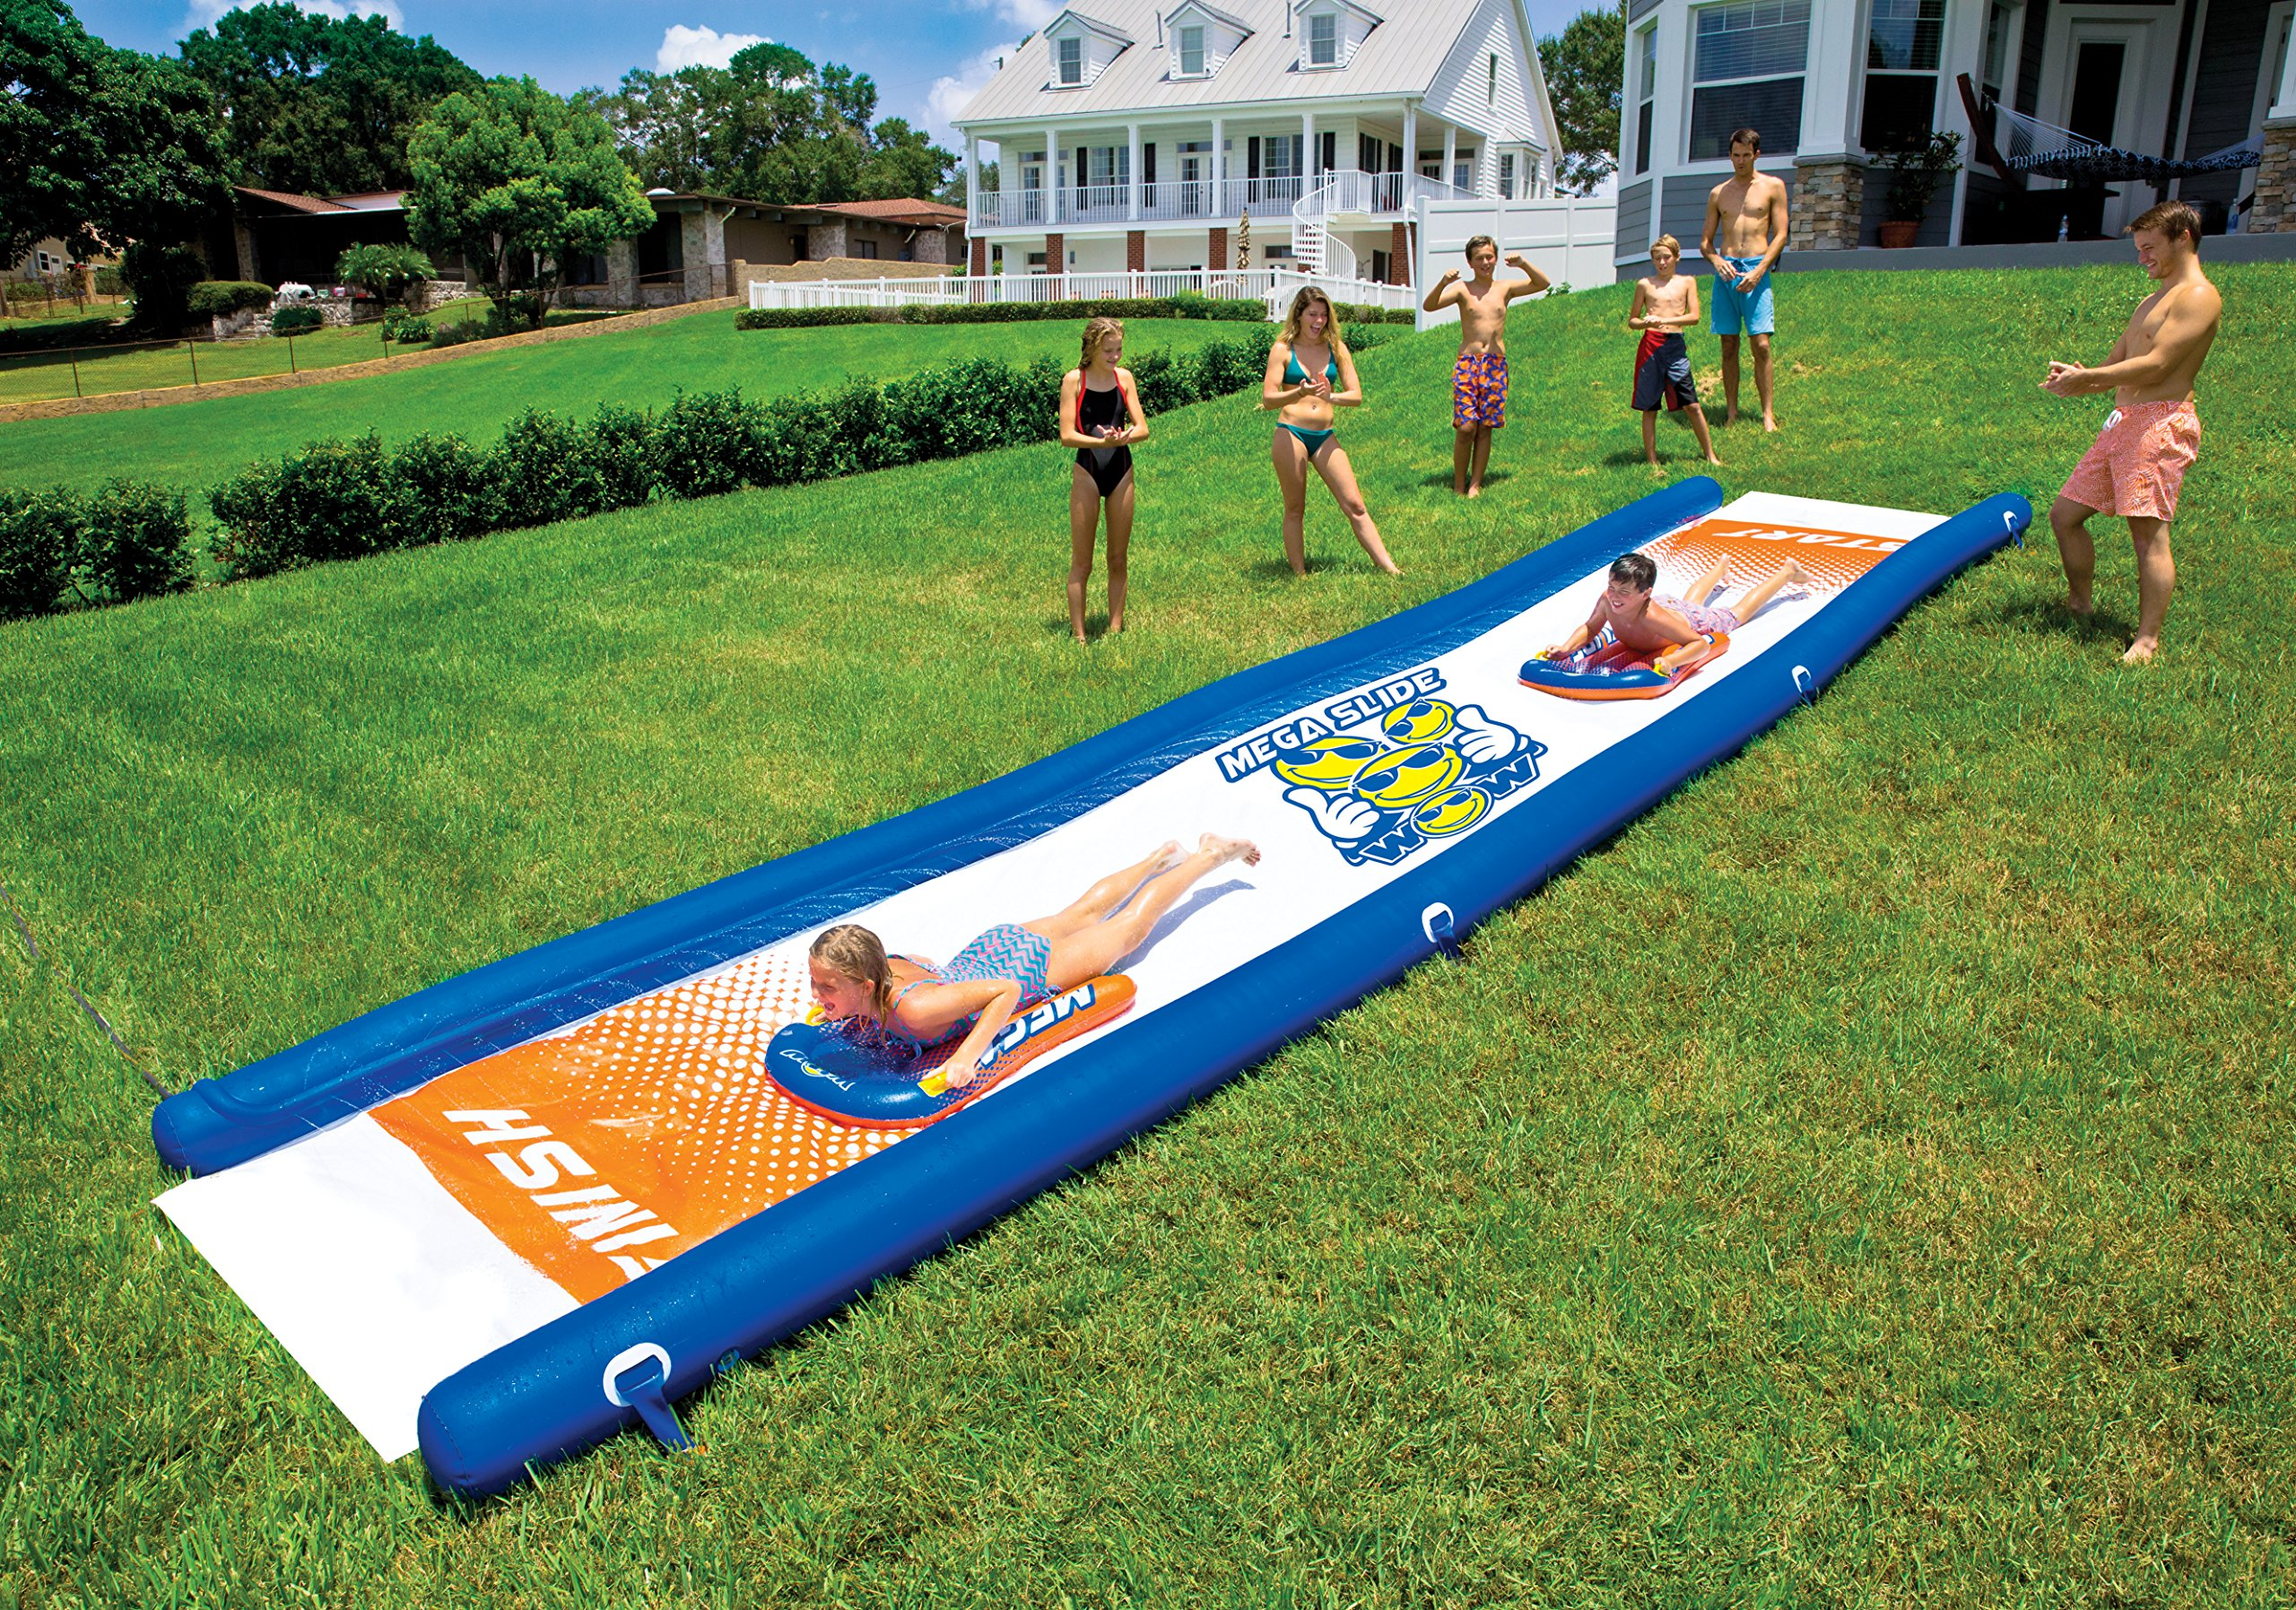 WOW World of Watersports 18-2200 Mega Slide, Giant Backyard Waterslide, High Side Walls, Built in Sprinkler, 25 Feet x 6 Feet, Includes Hand Pump and 2 Inflatable Sleds by WOW Sports